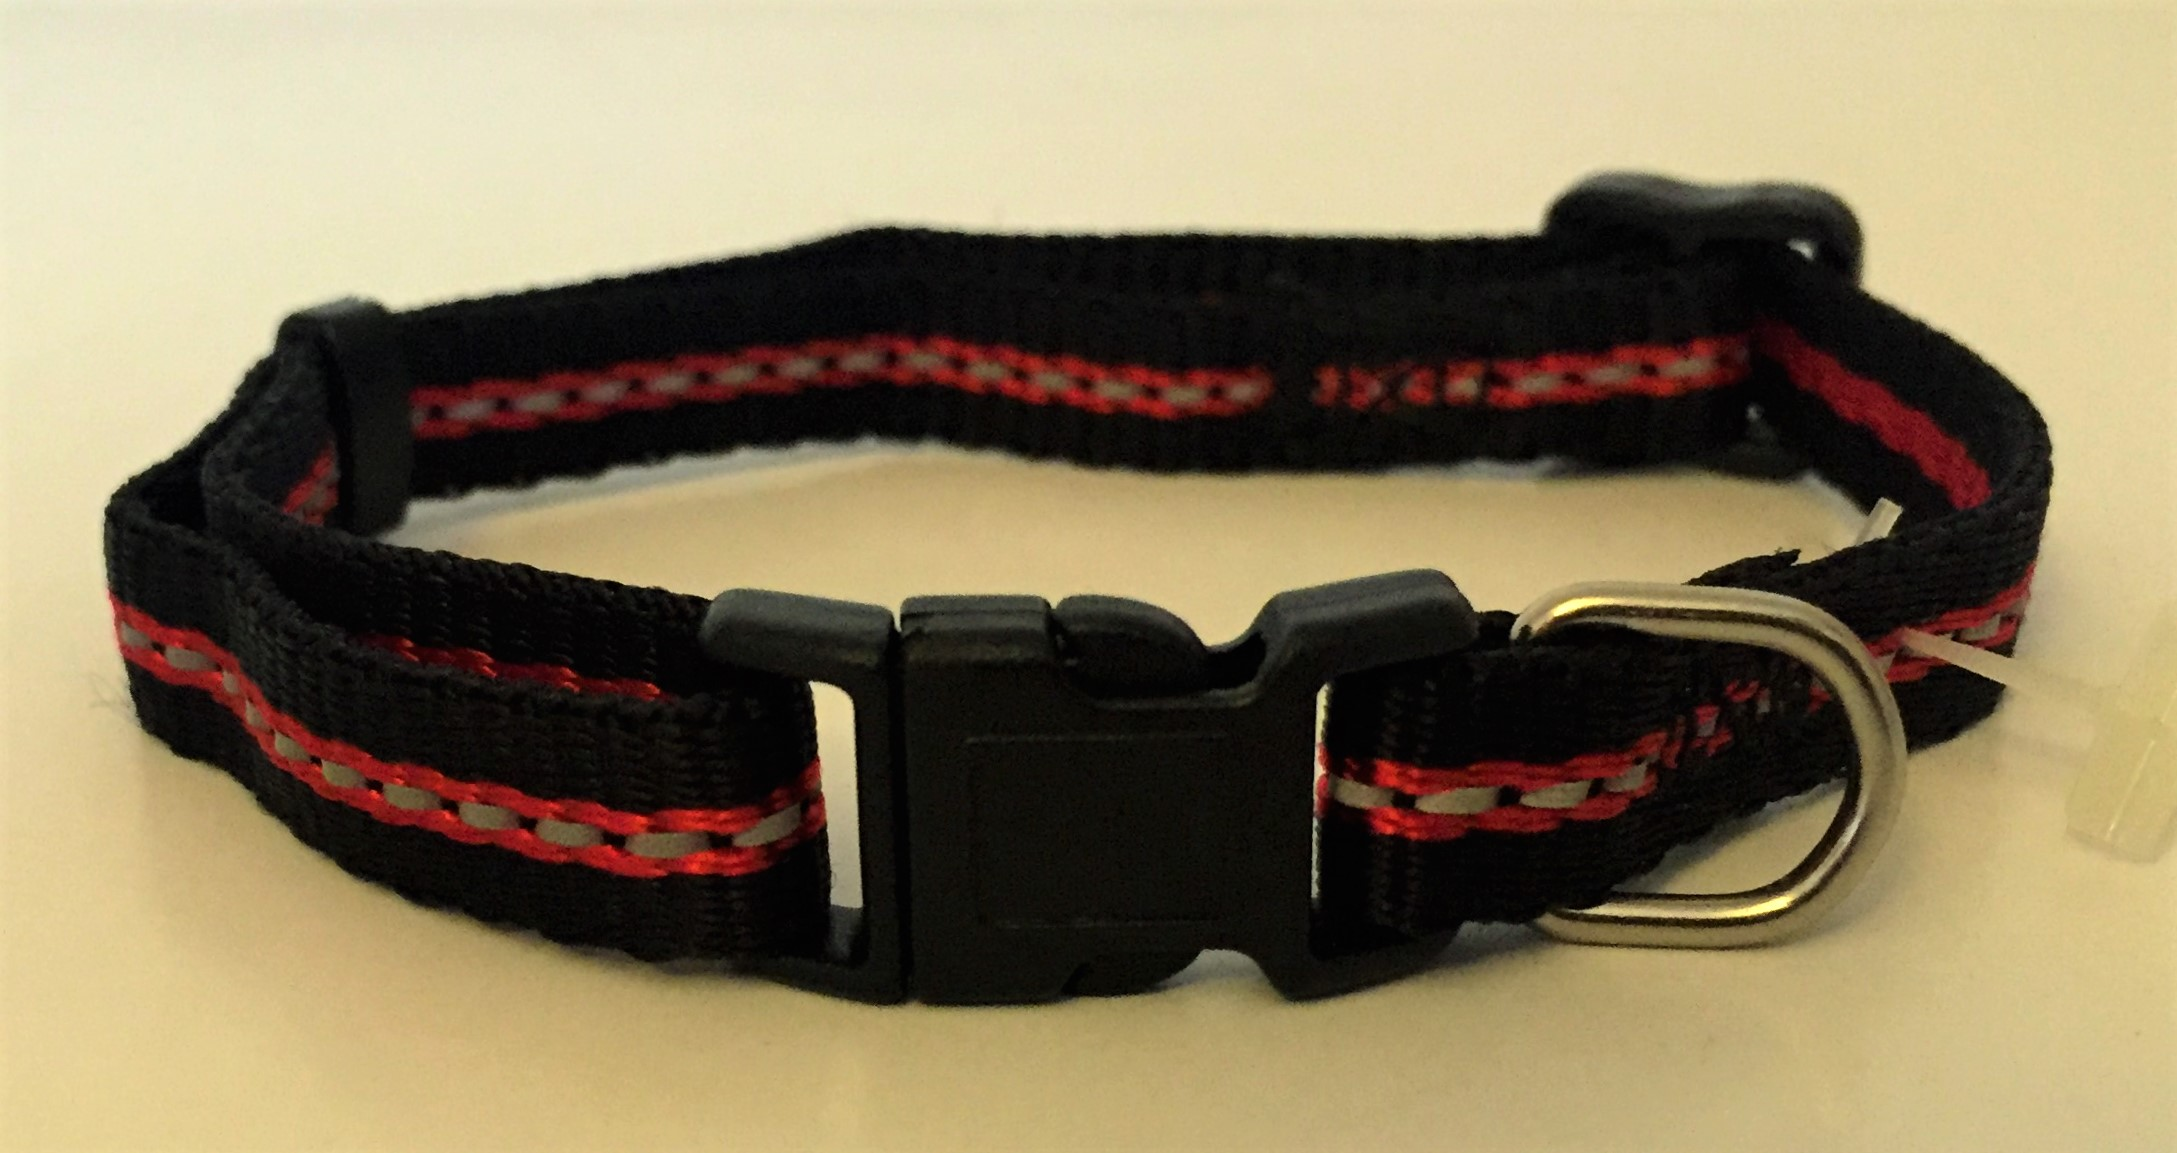 Reflective Adjustable Collar Black/Red Stripe - 10mm x 35cm